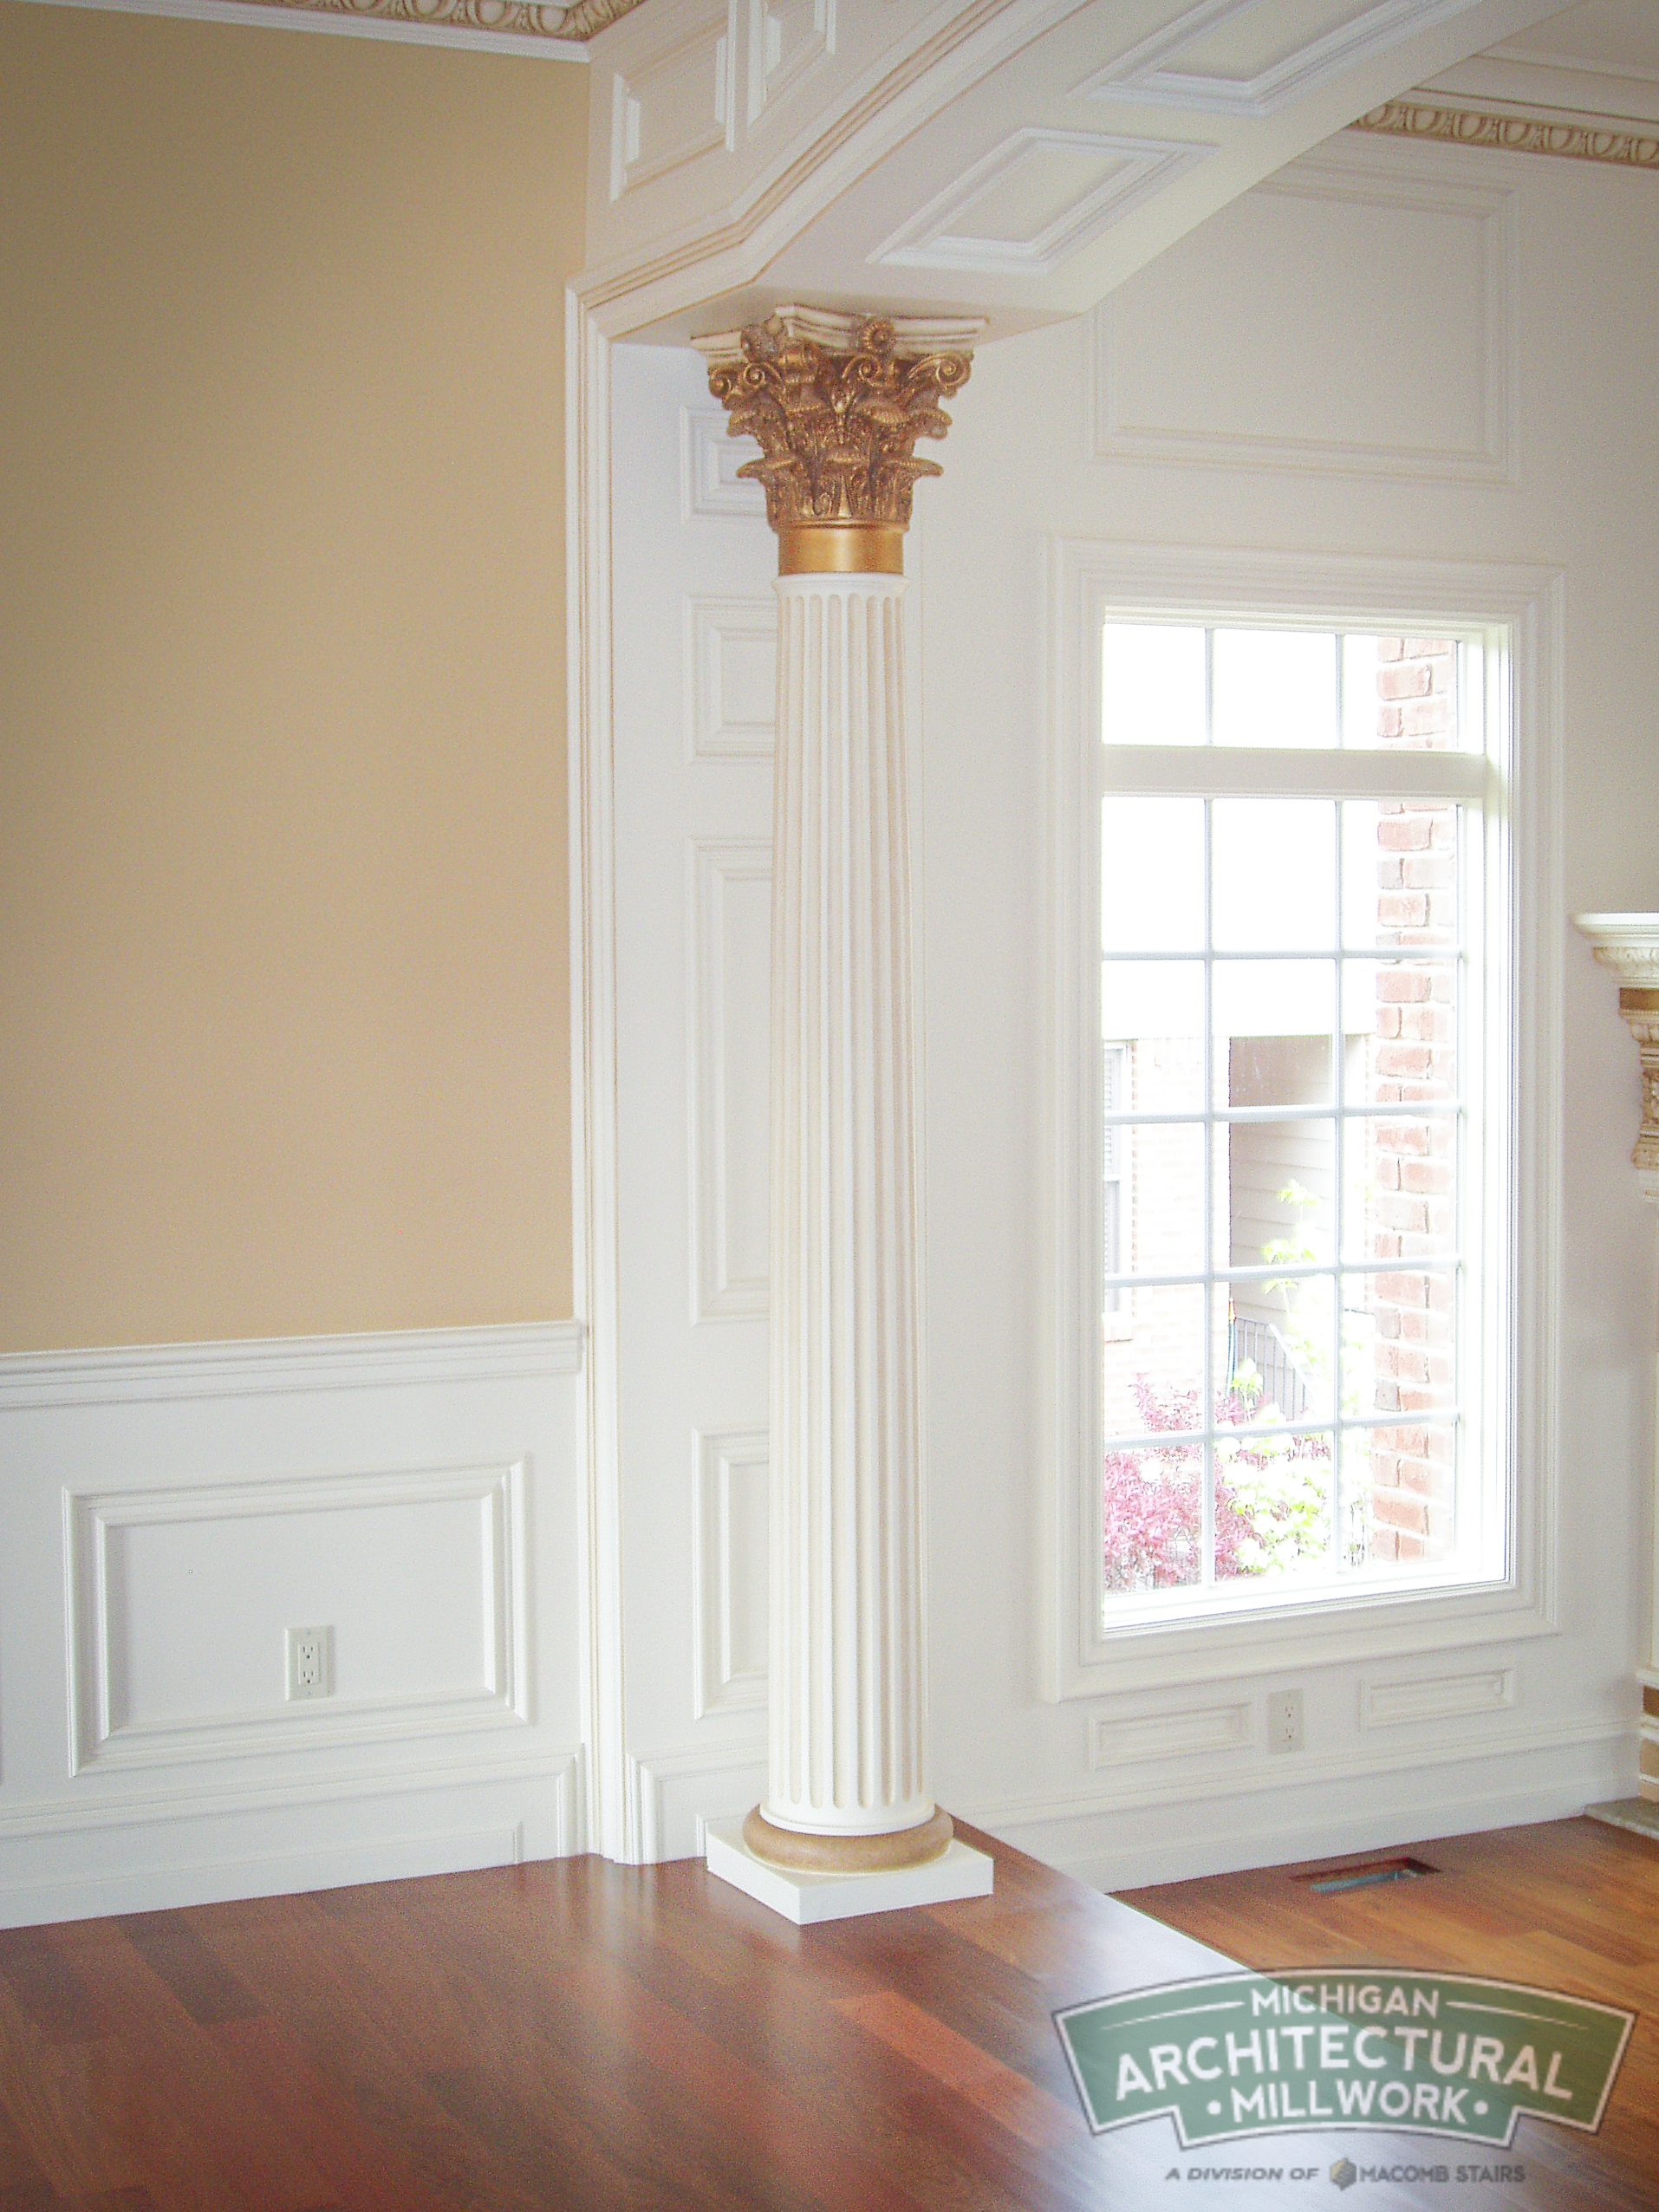 Michigan Architectural Millwork- Moulding and Millwork Photo-198.jpg